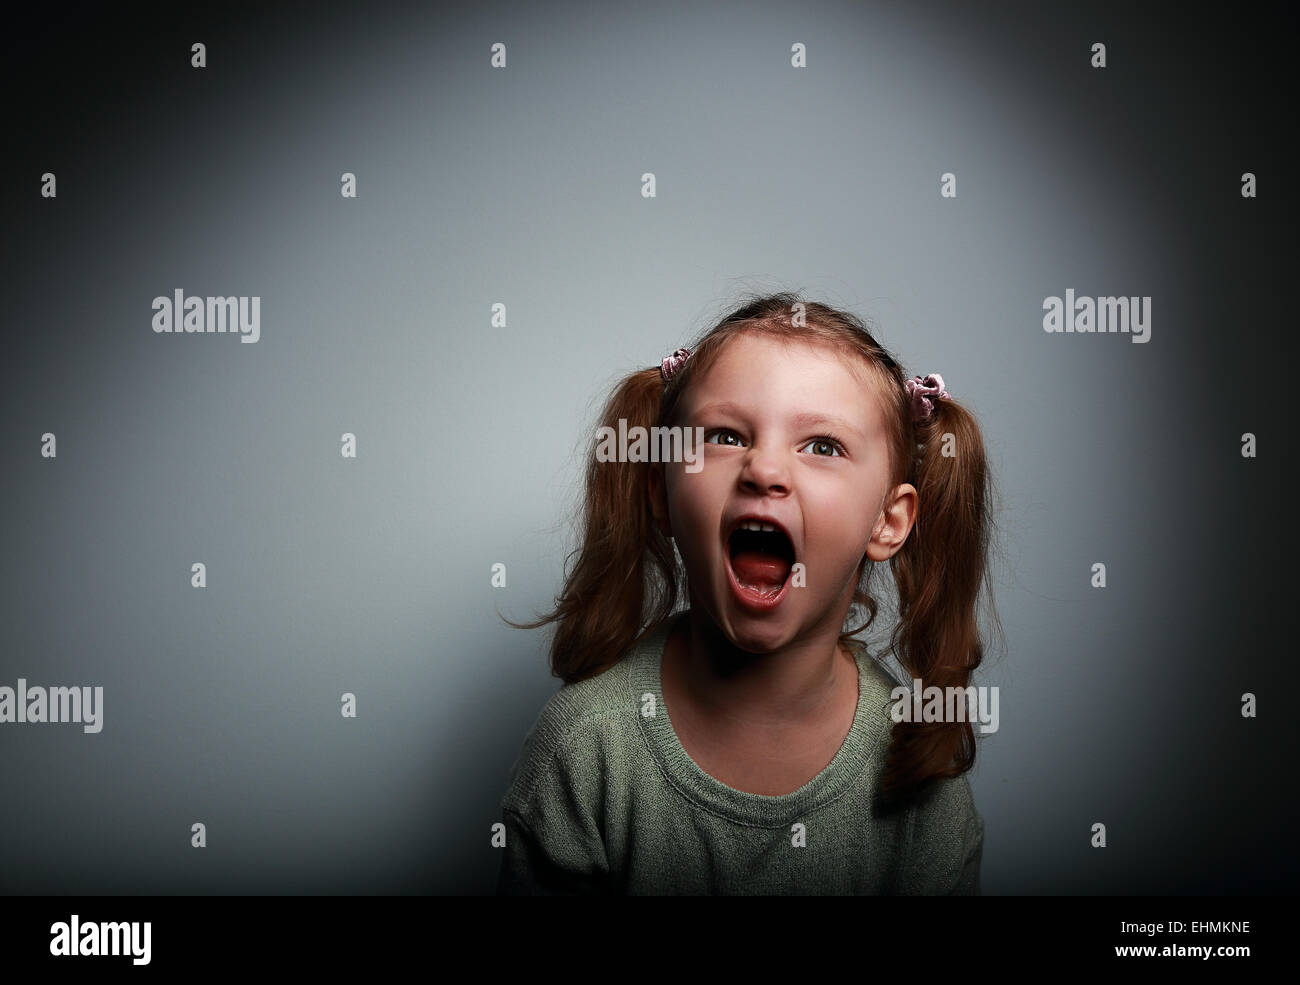 Angry child girl screaming with opened mouth and looking up with evil on dark background - Stock Image